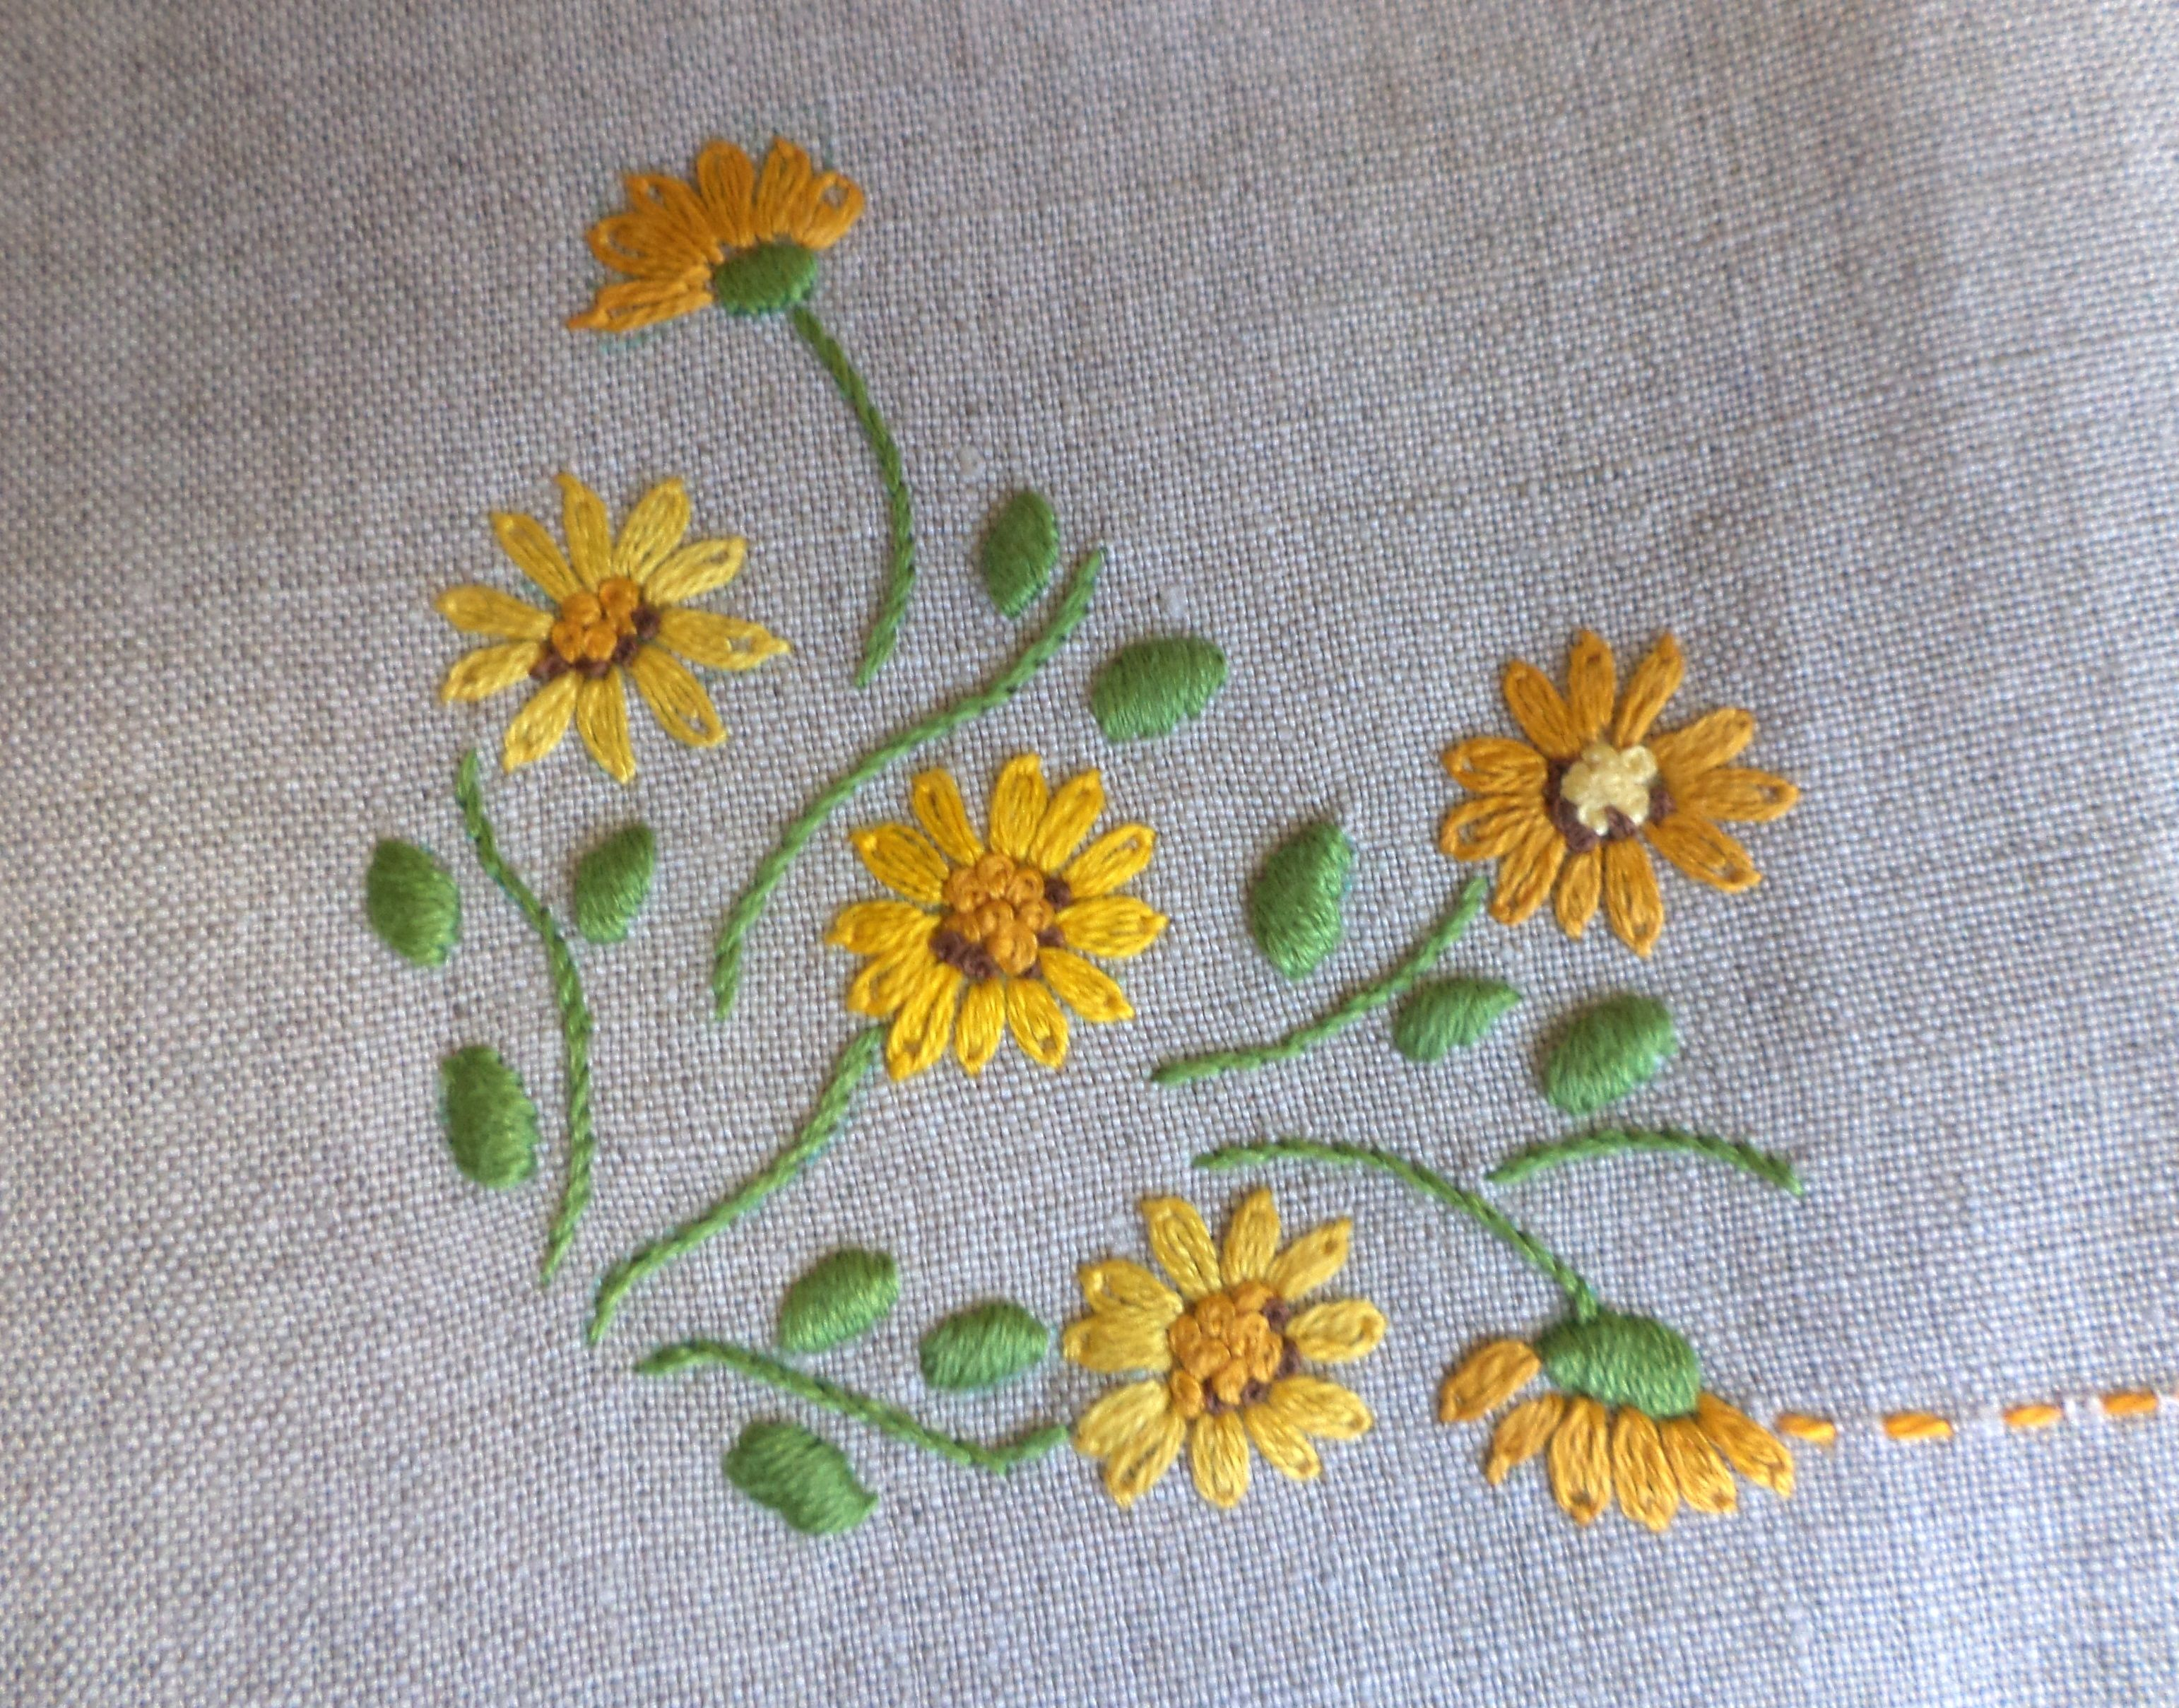 Pin By Janaki Bandari On Stitches 3 Pinterest Embroidery Hand